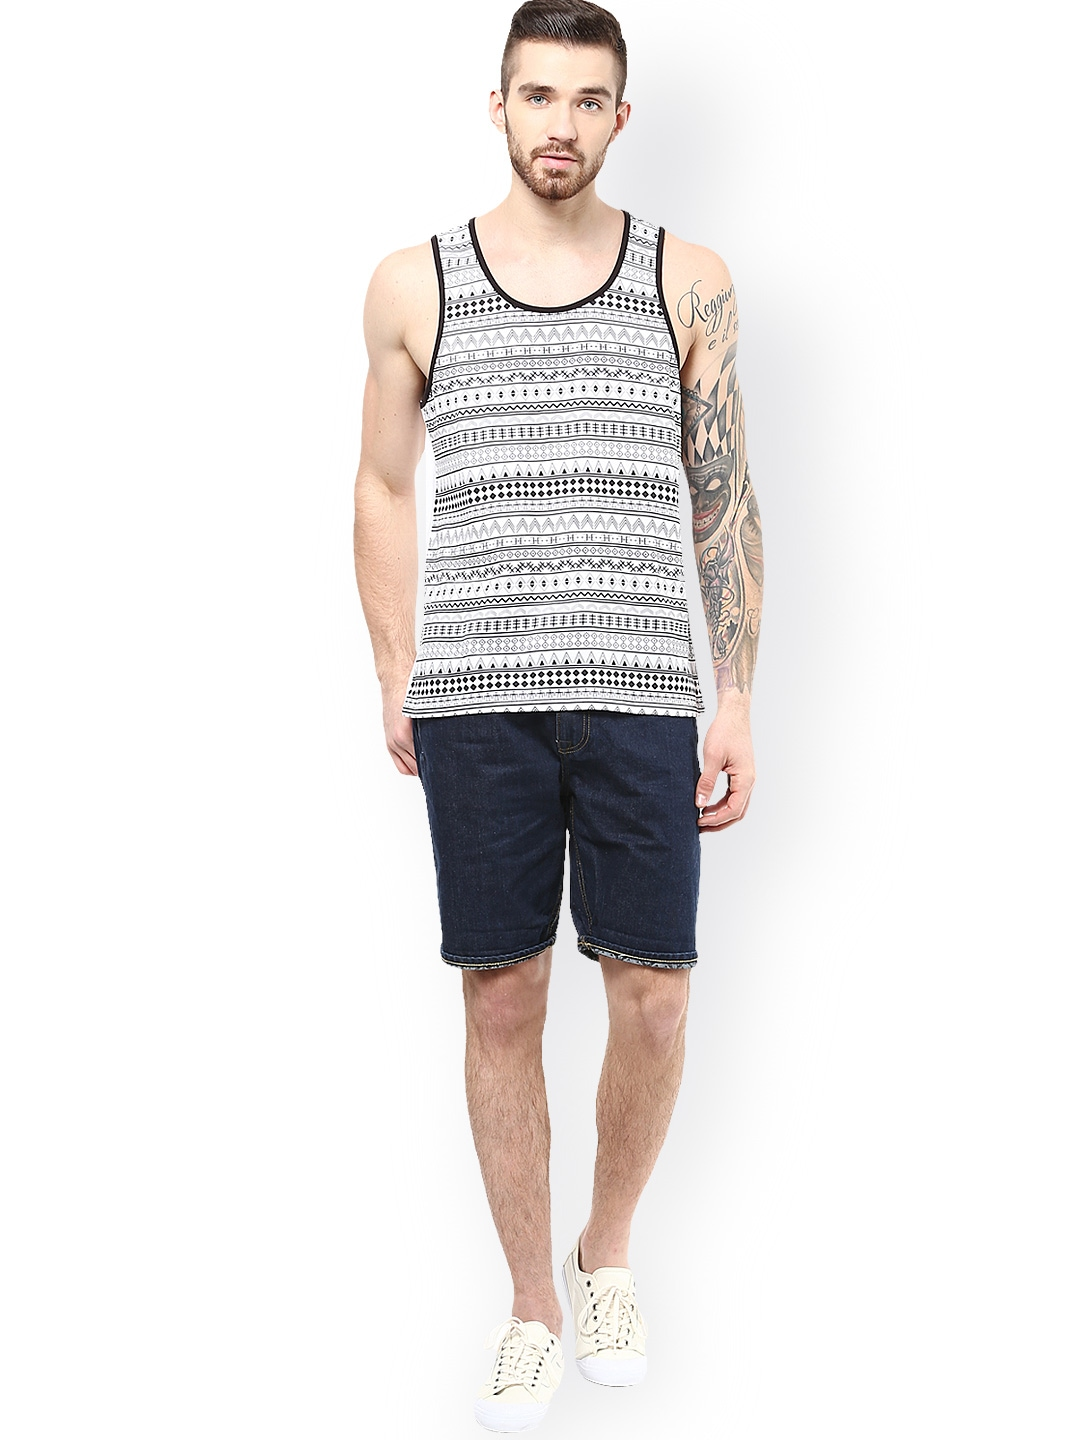 For this reason, clothing Shop Online is happy to provide you with a convenient place to buy discount men's sleeveless t-shirts online. The Heavyweight Tank Top by Anvil is made of pre-shrunk % cotton and can work perfectly as an undershirt.